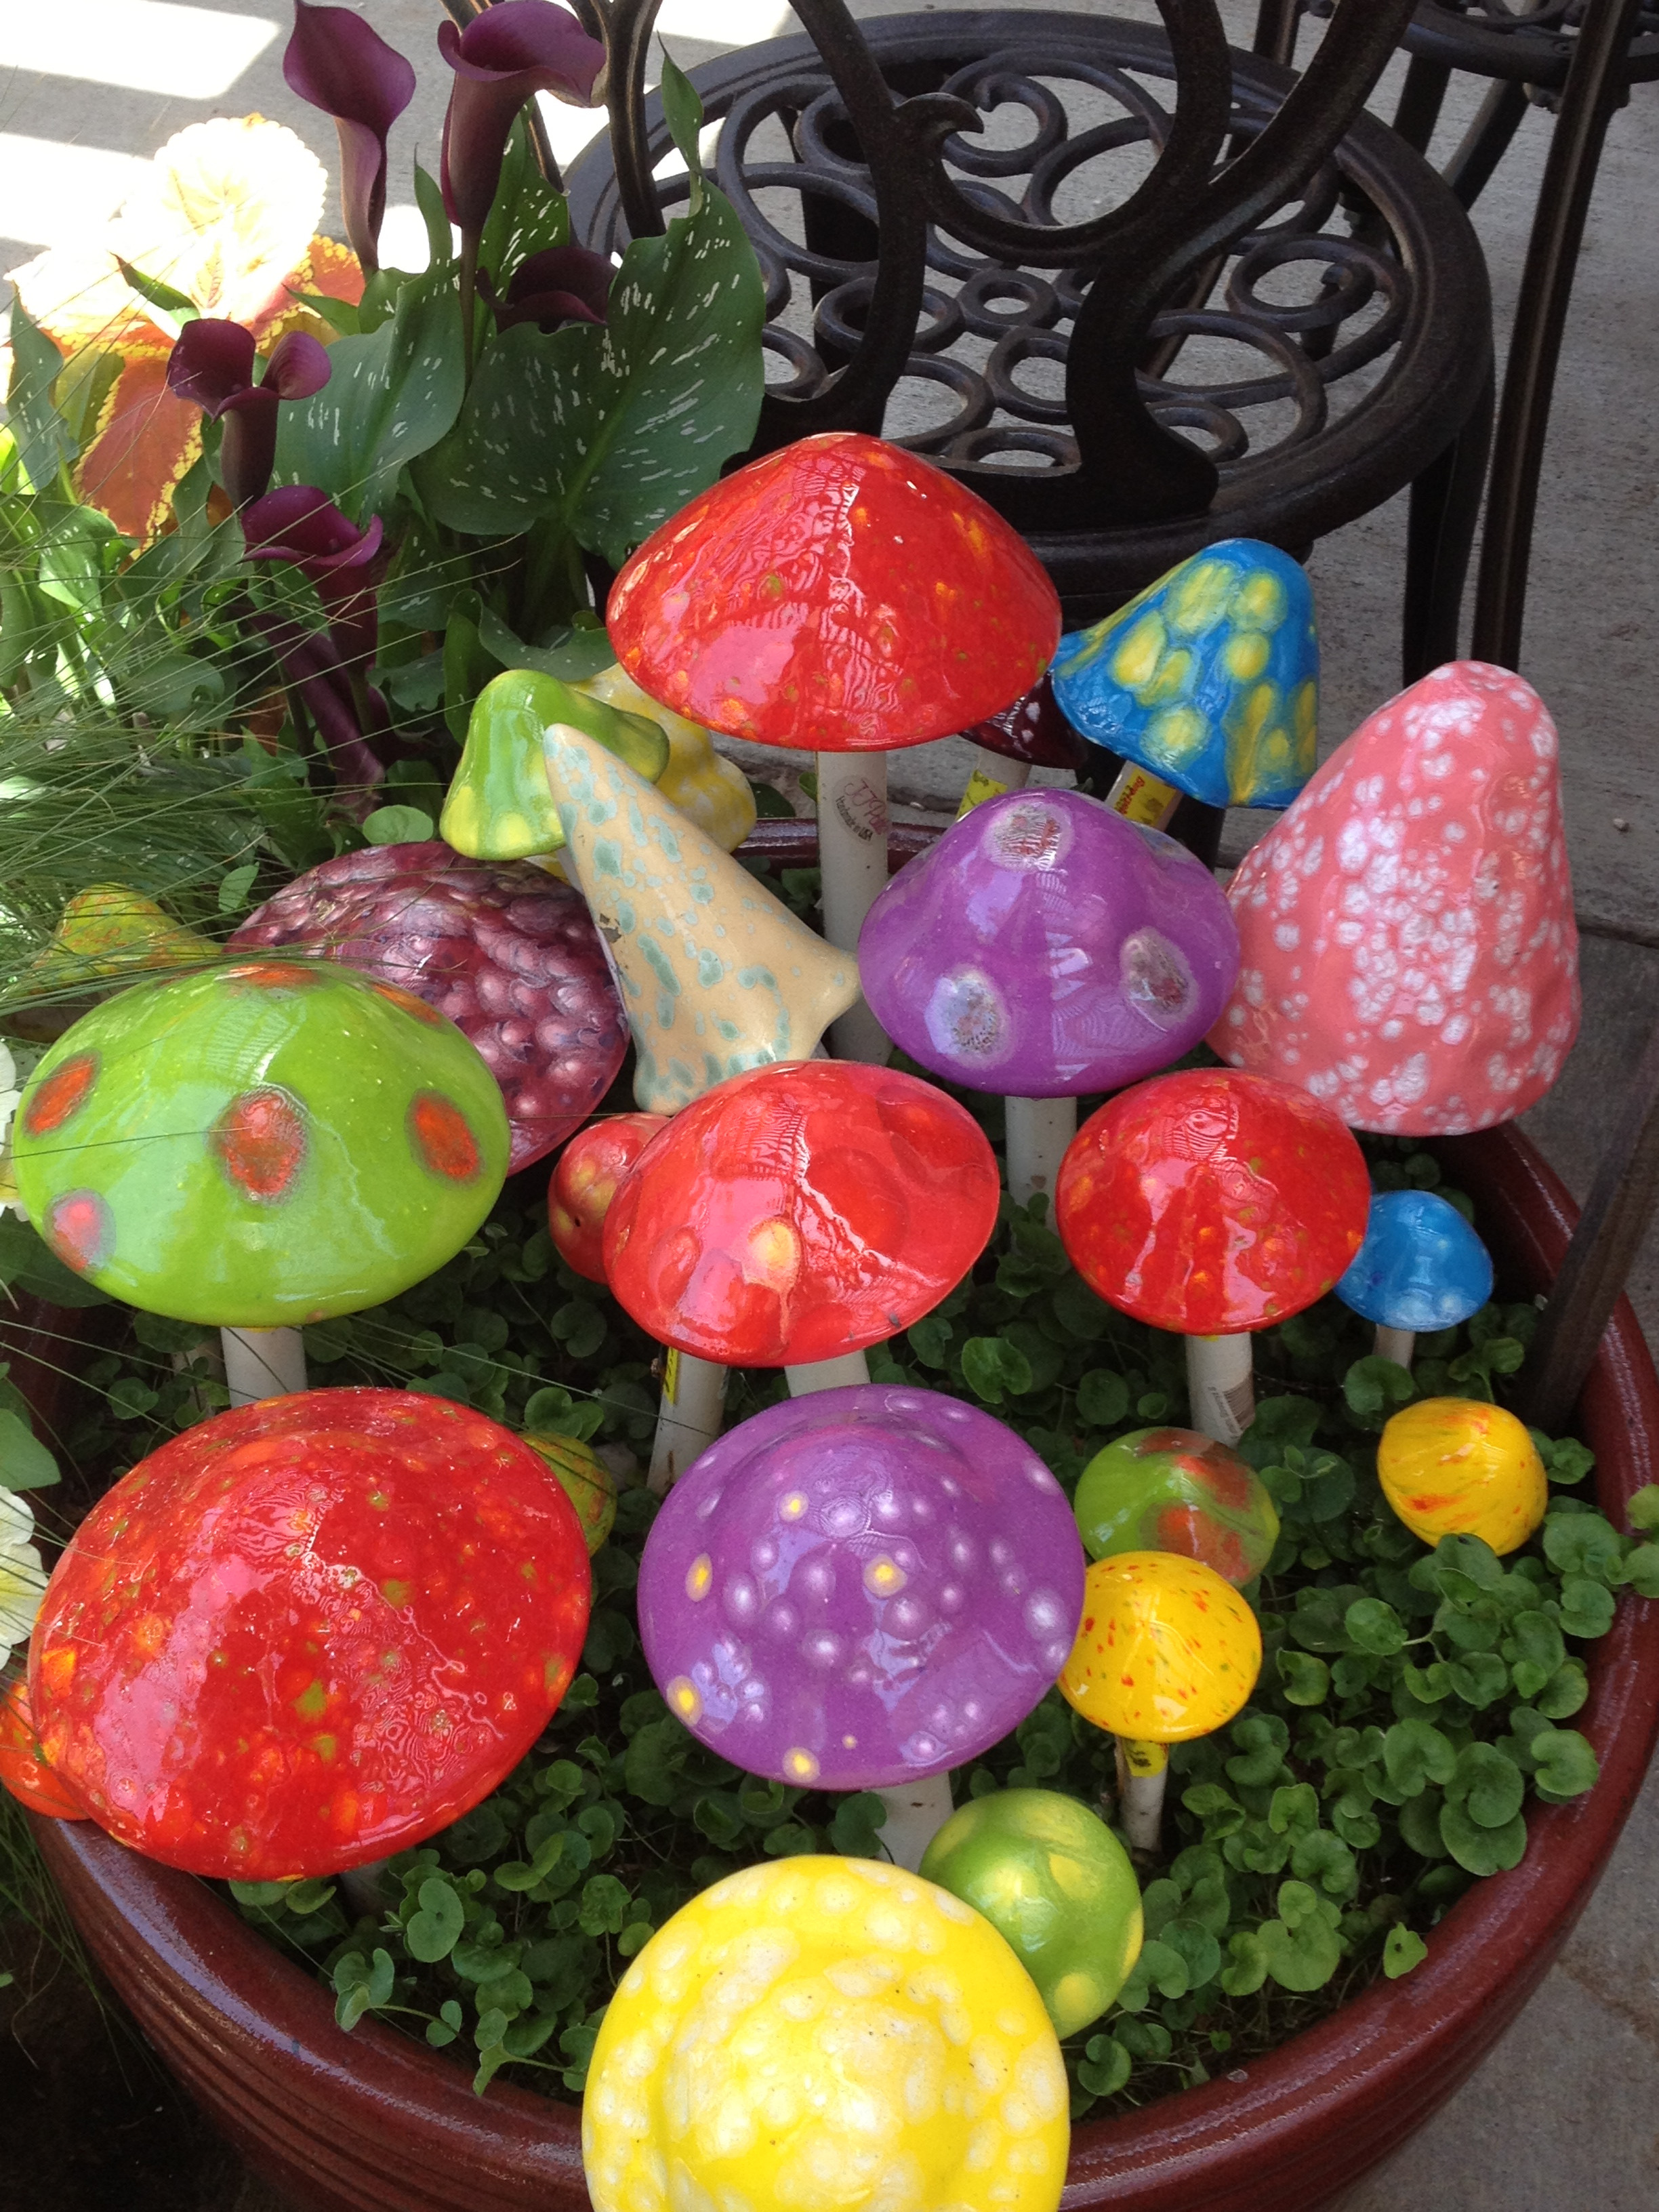 Best ideas about DIY Garden Decor . Save or Pin 25 Easy DIY Garden Projects You Can Start Now Now.